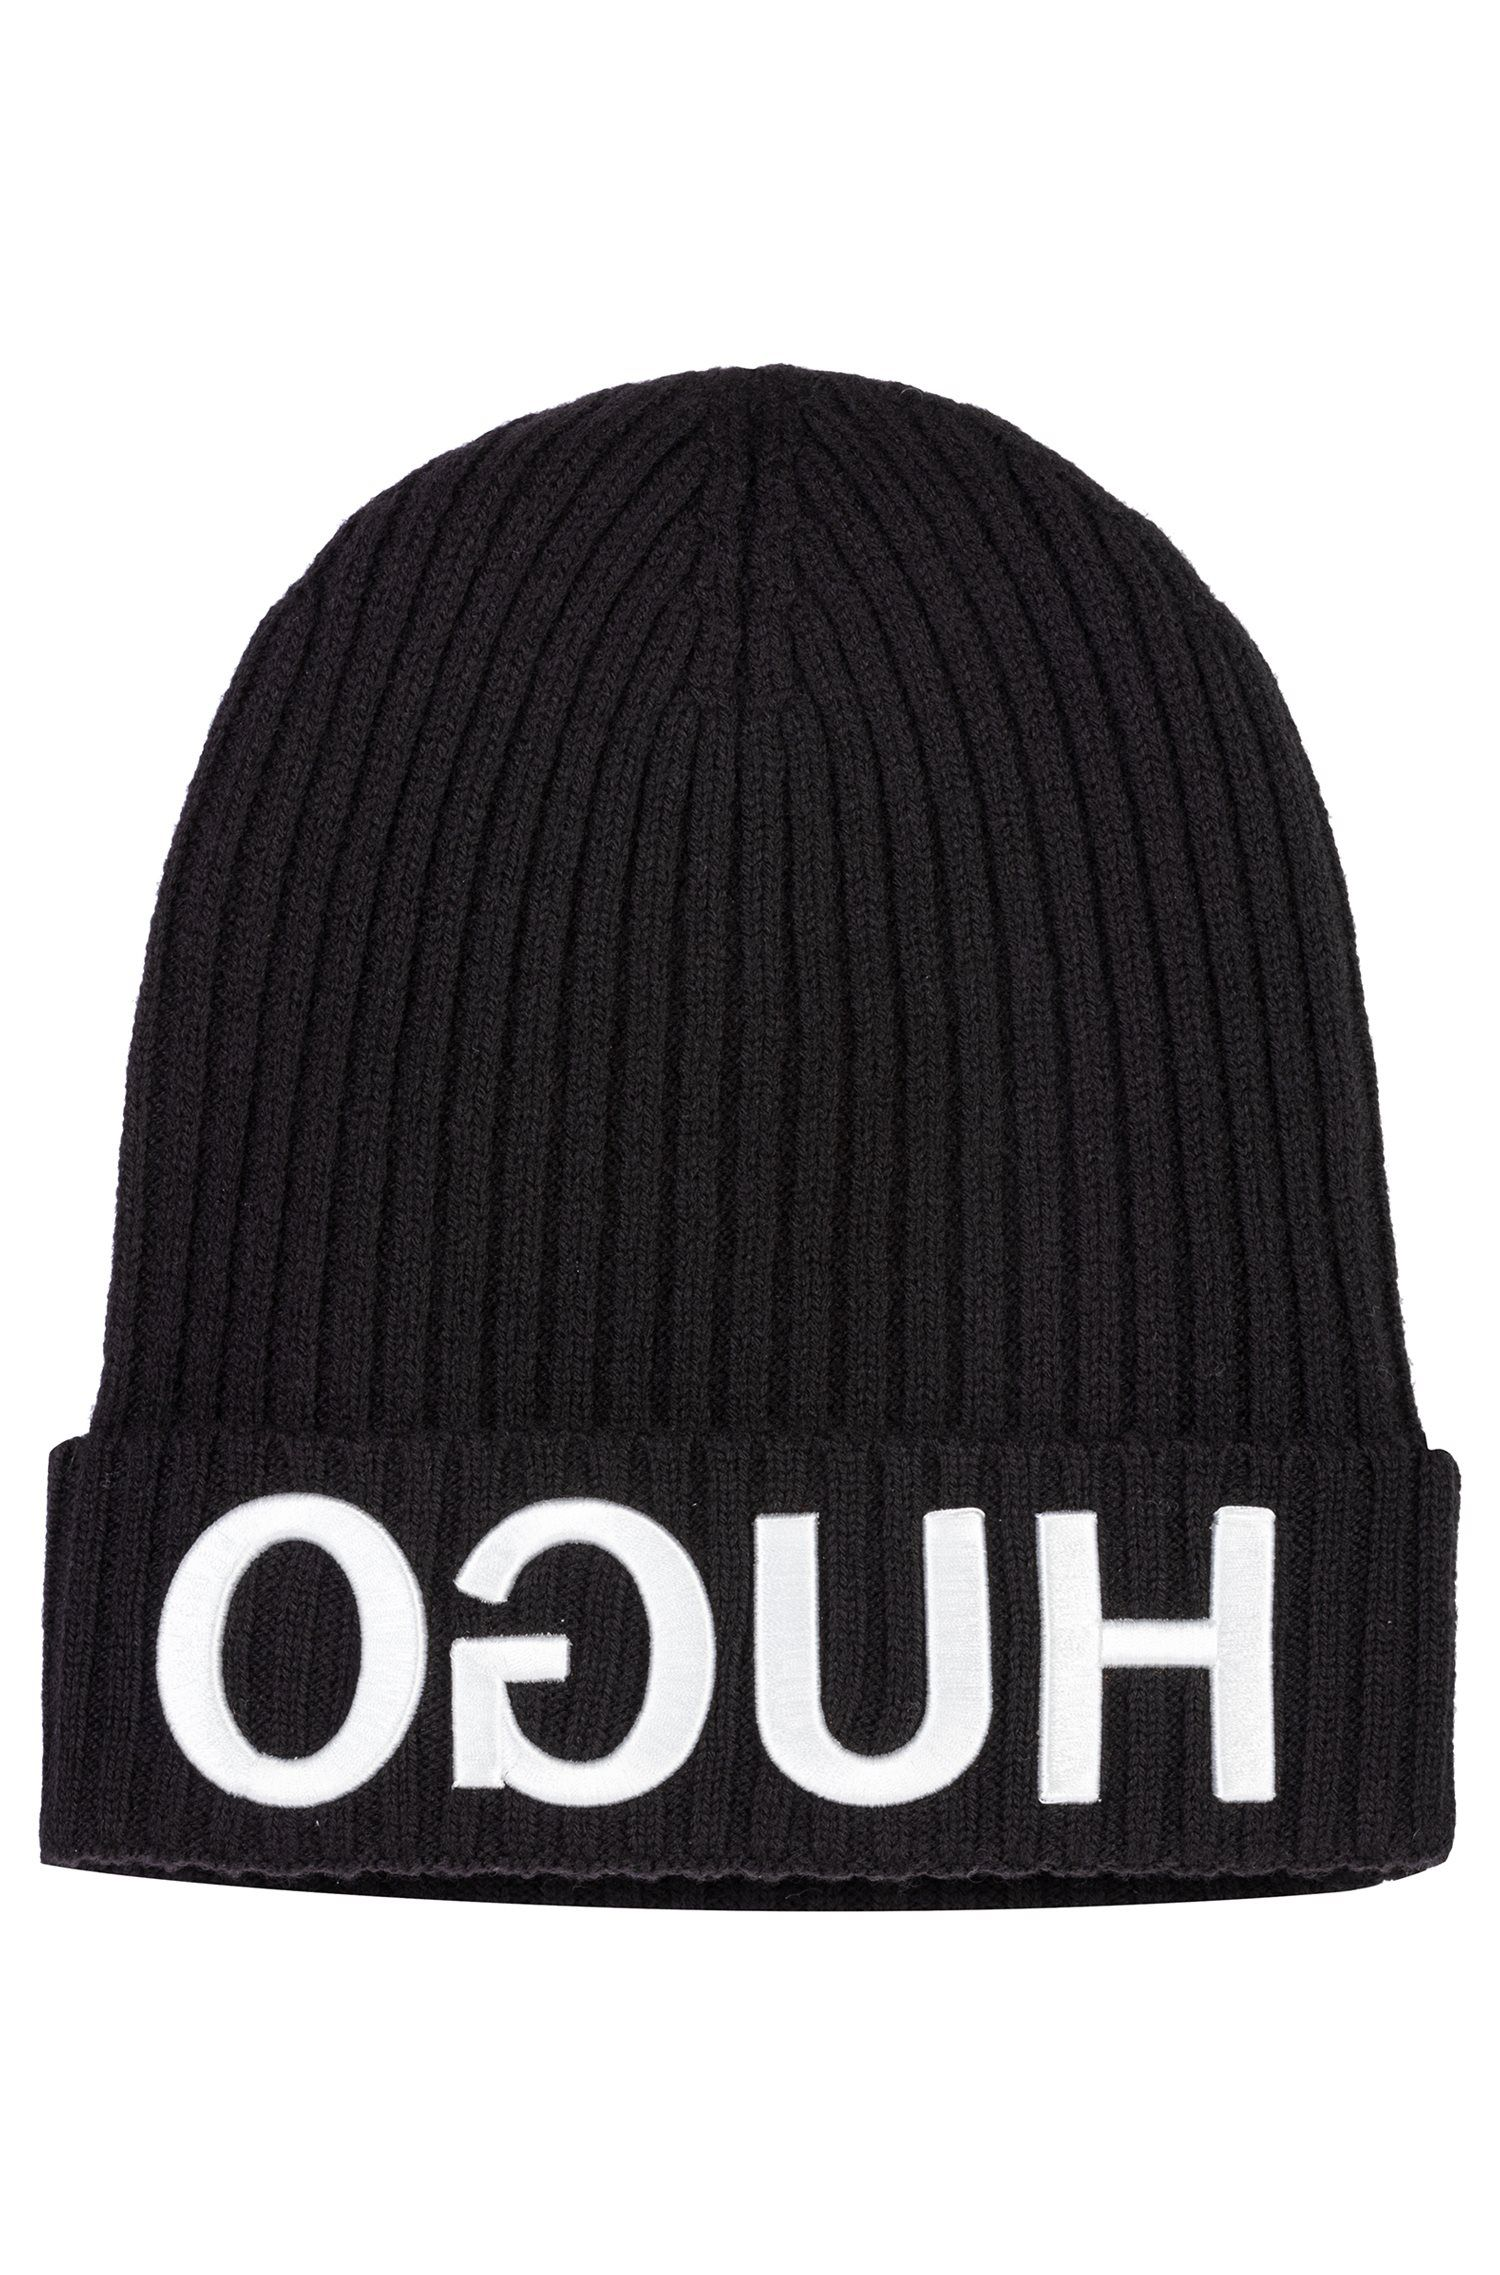 Wool beanie hat with 3D reverse-logo embroidery, Black